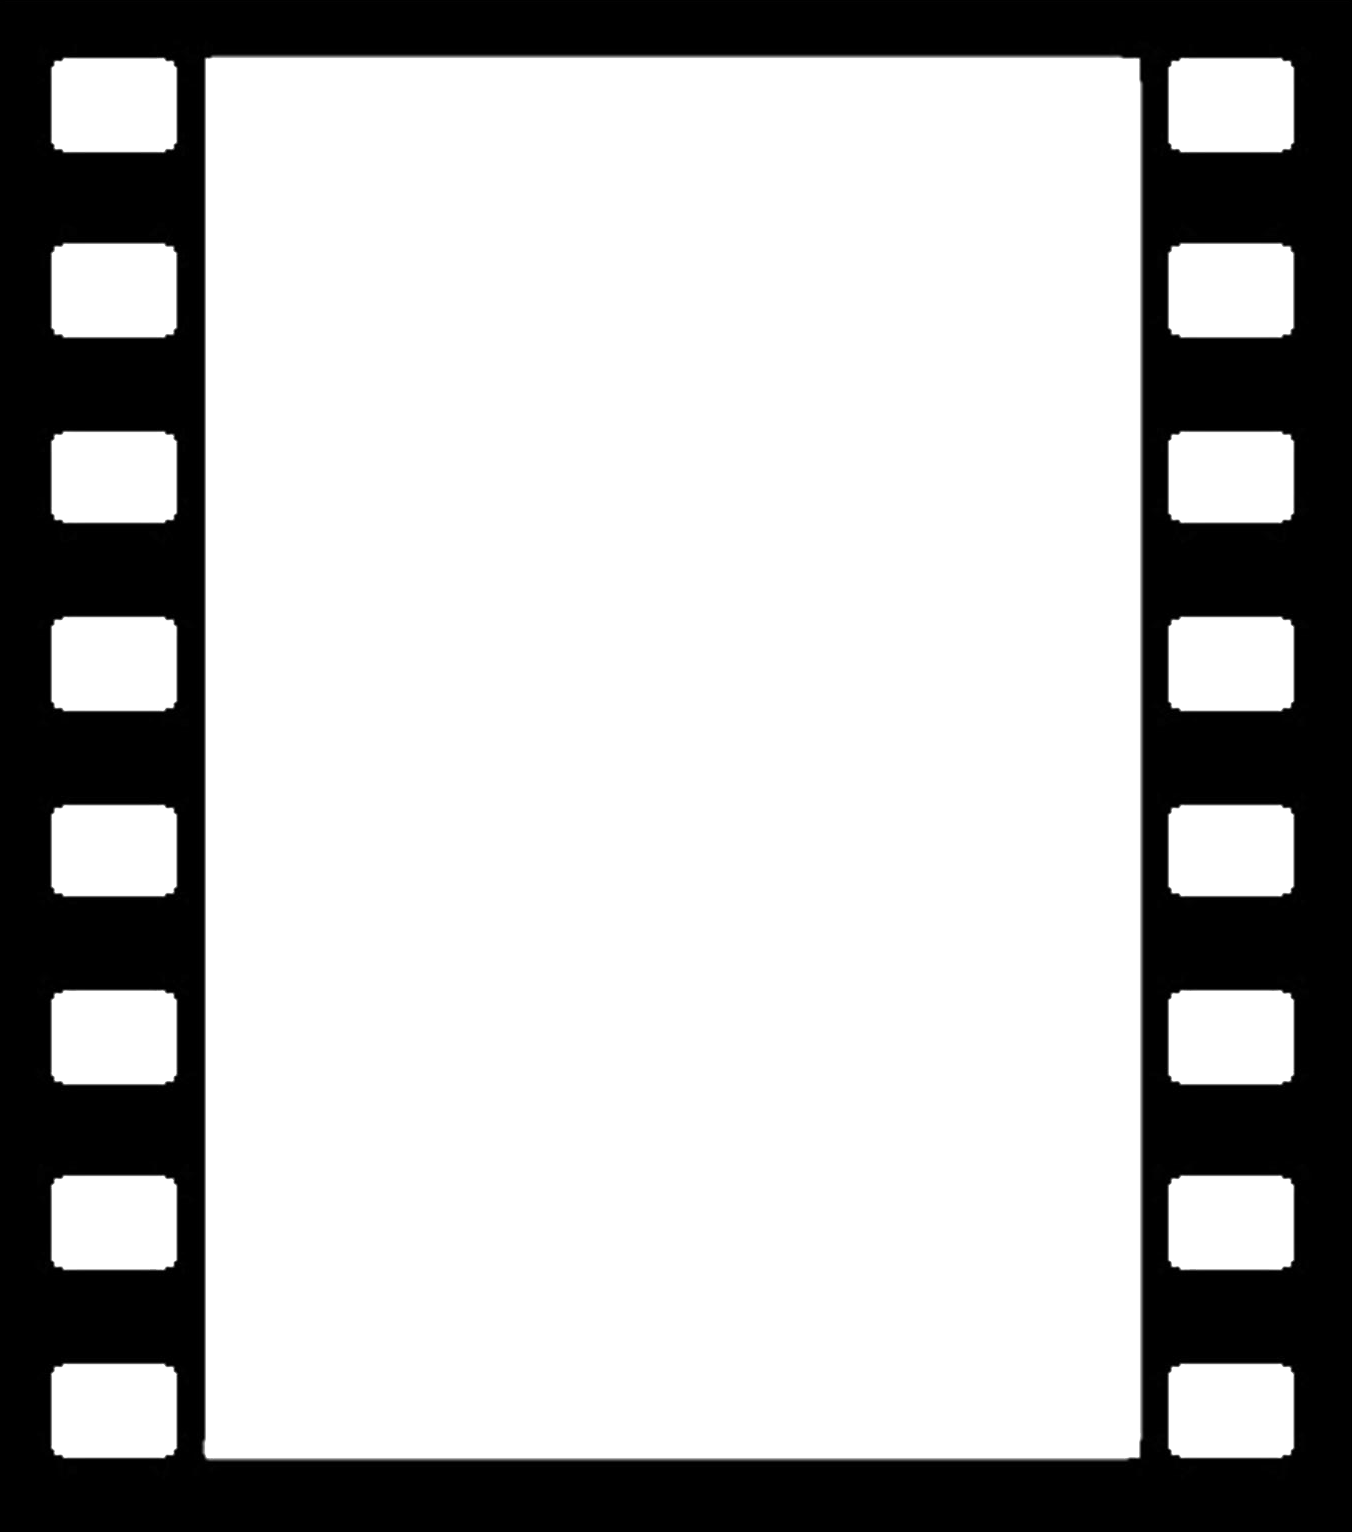 Film reel border png. Collection of clipart